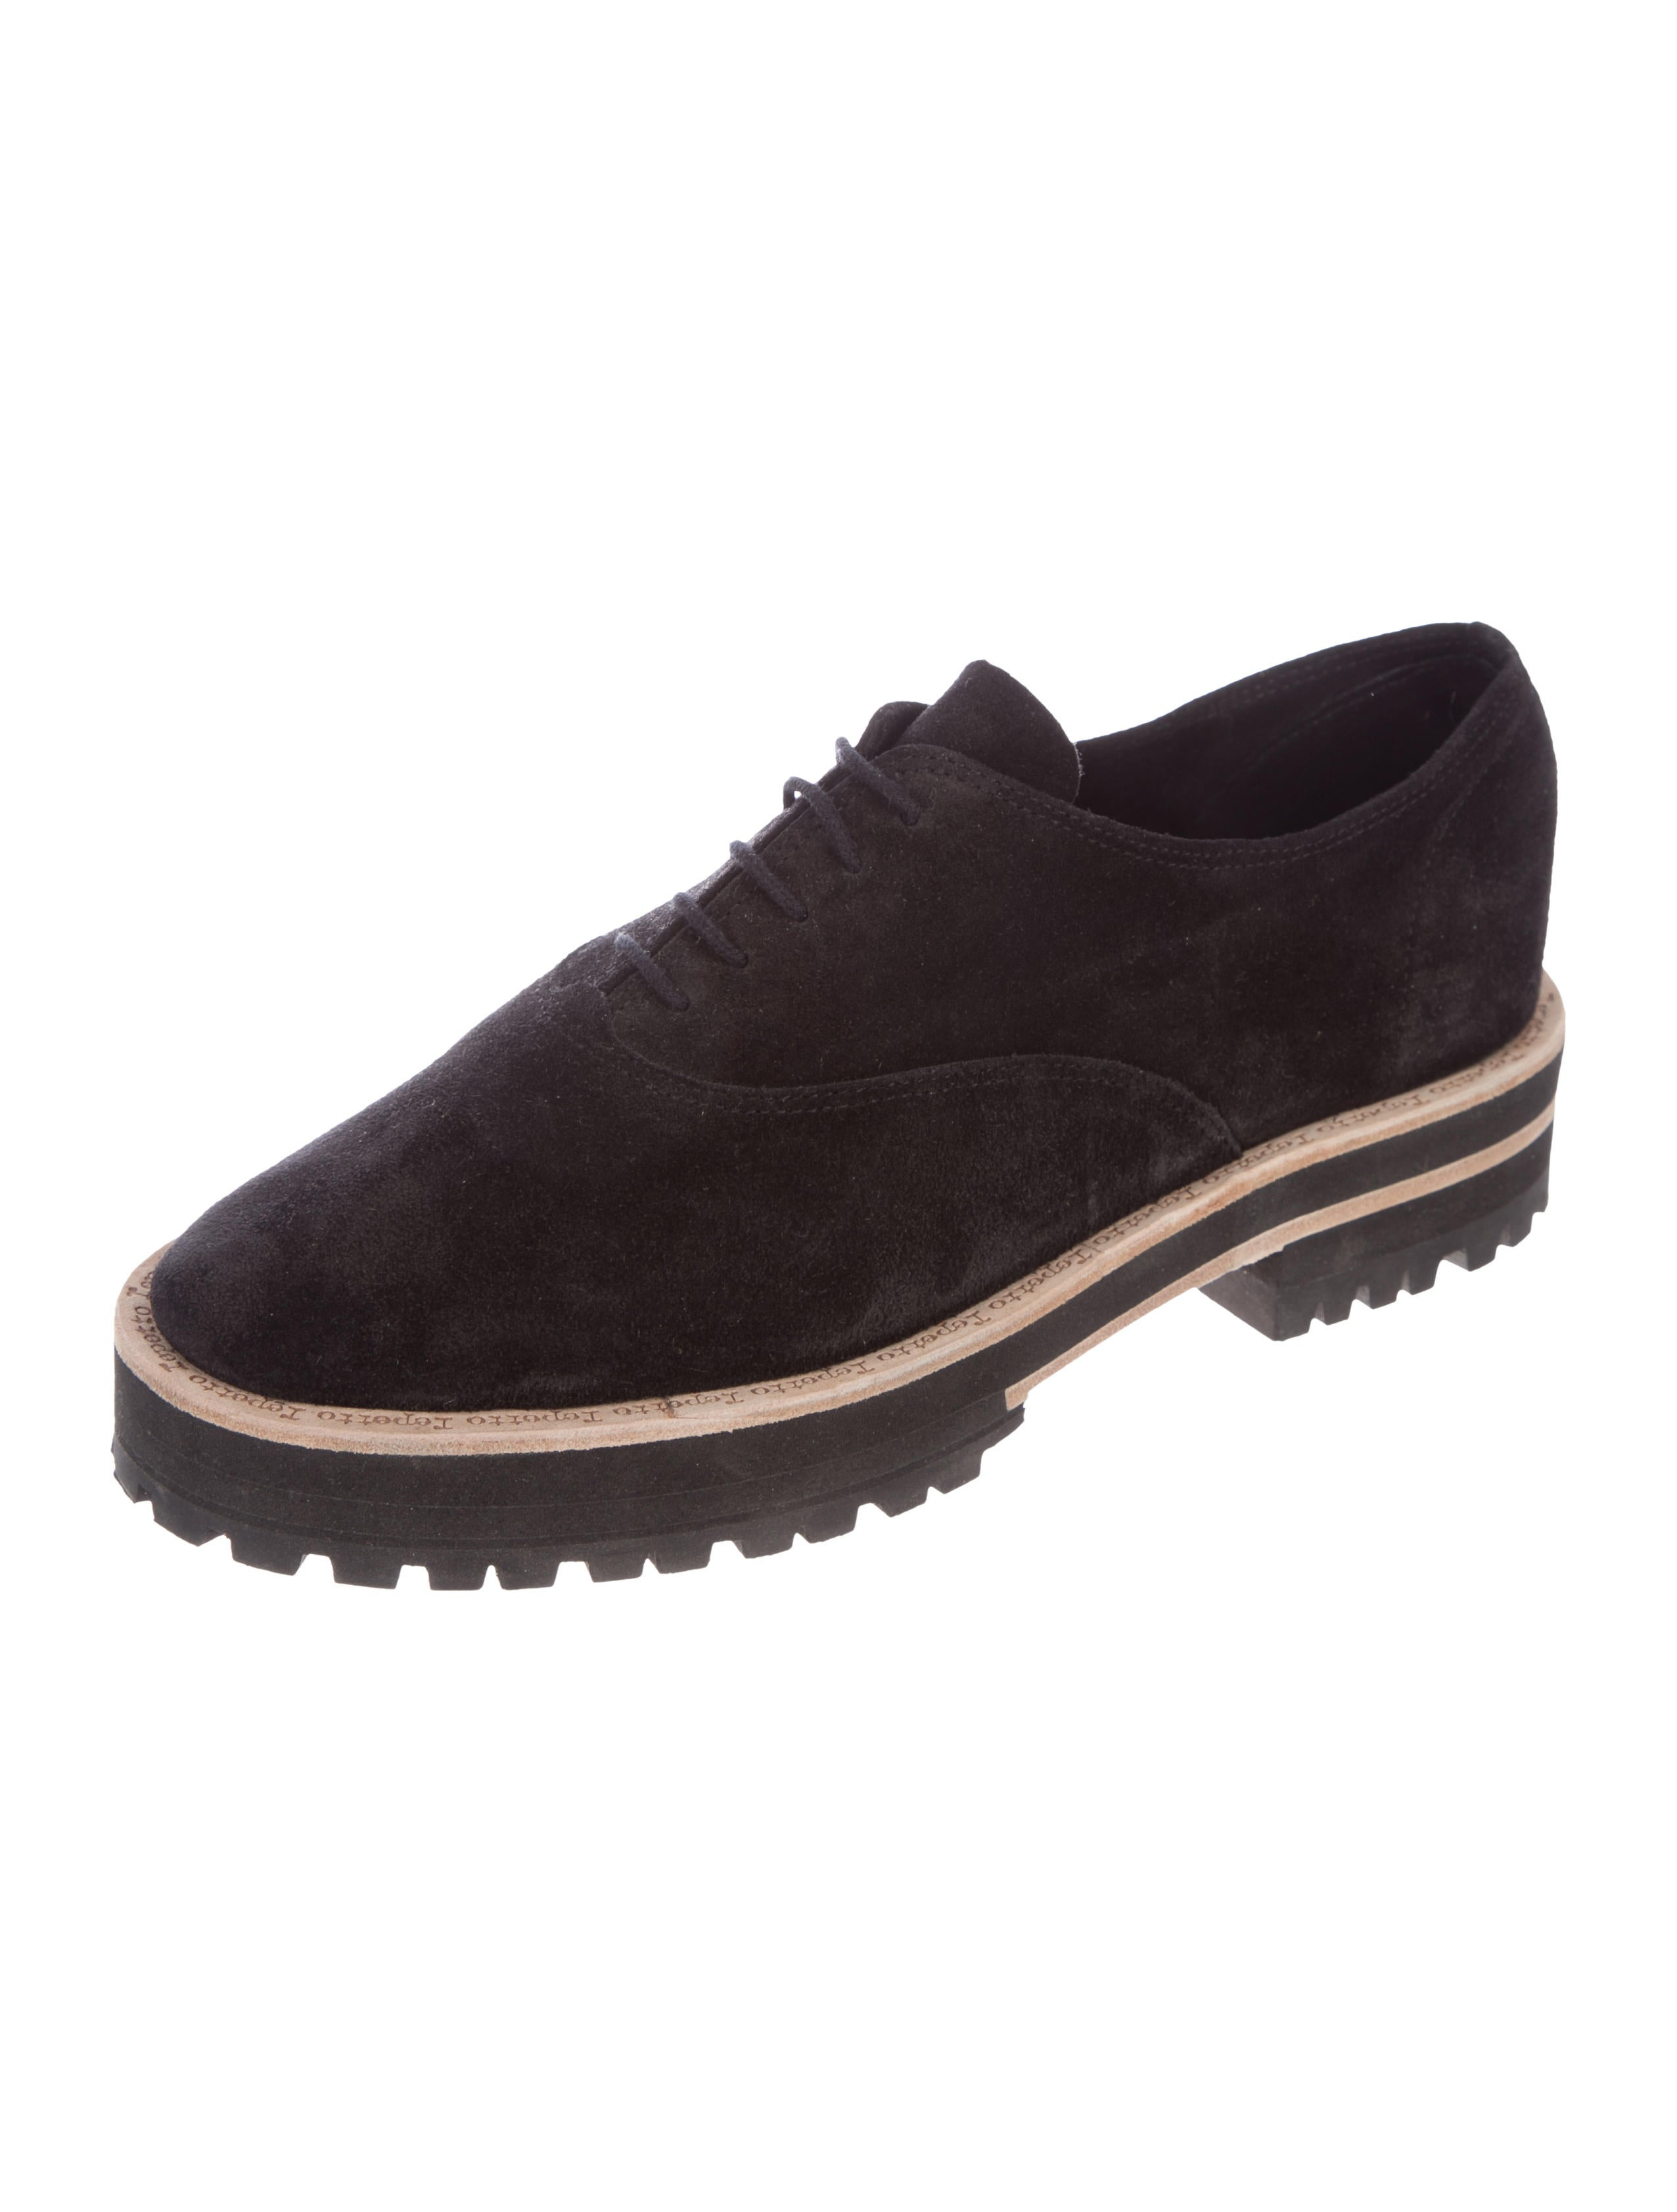 clearance cost clearance factory outlet Repetto Suede Platform Oxfords sale online Rw1WB0e0t